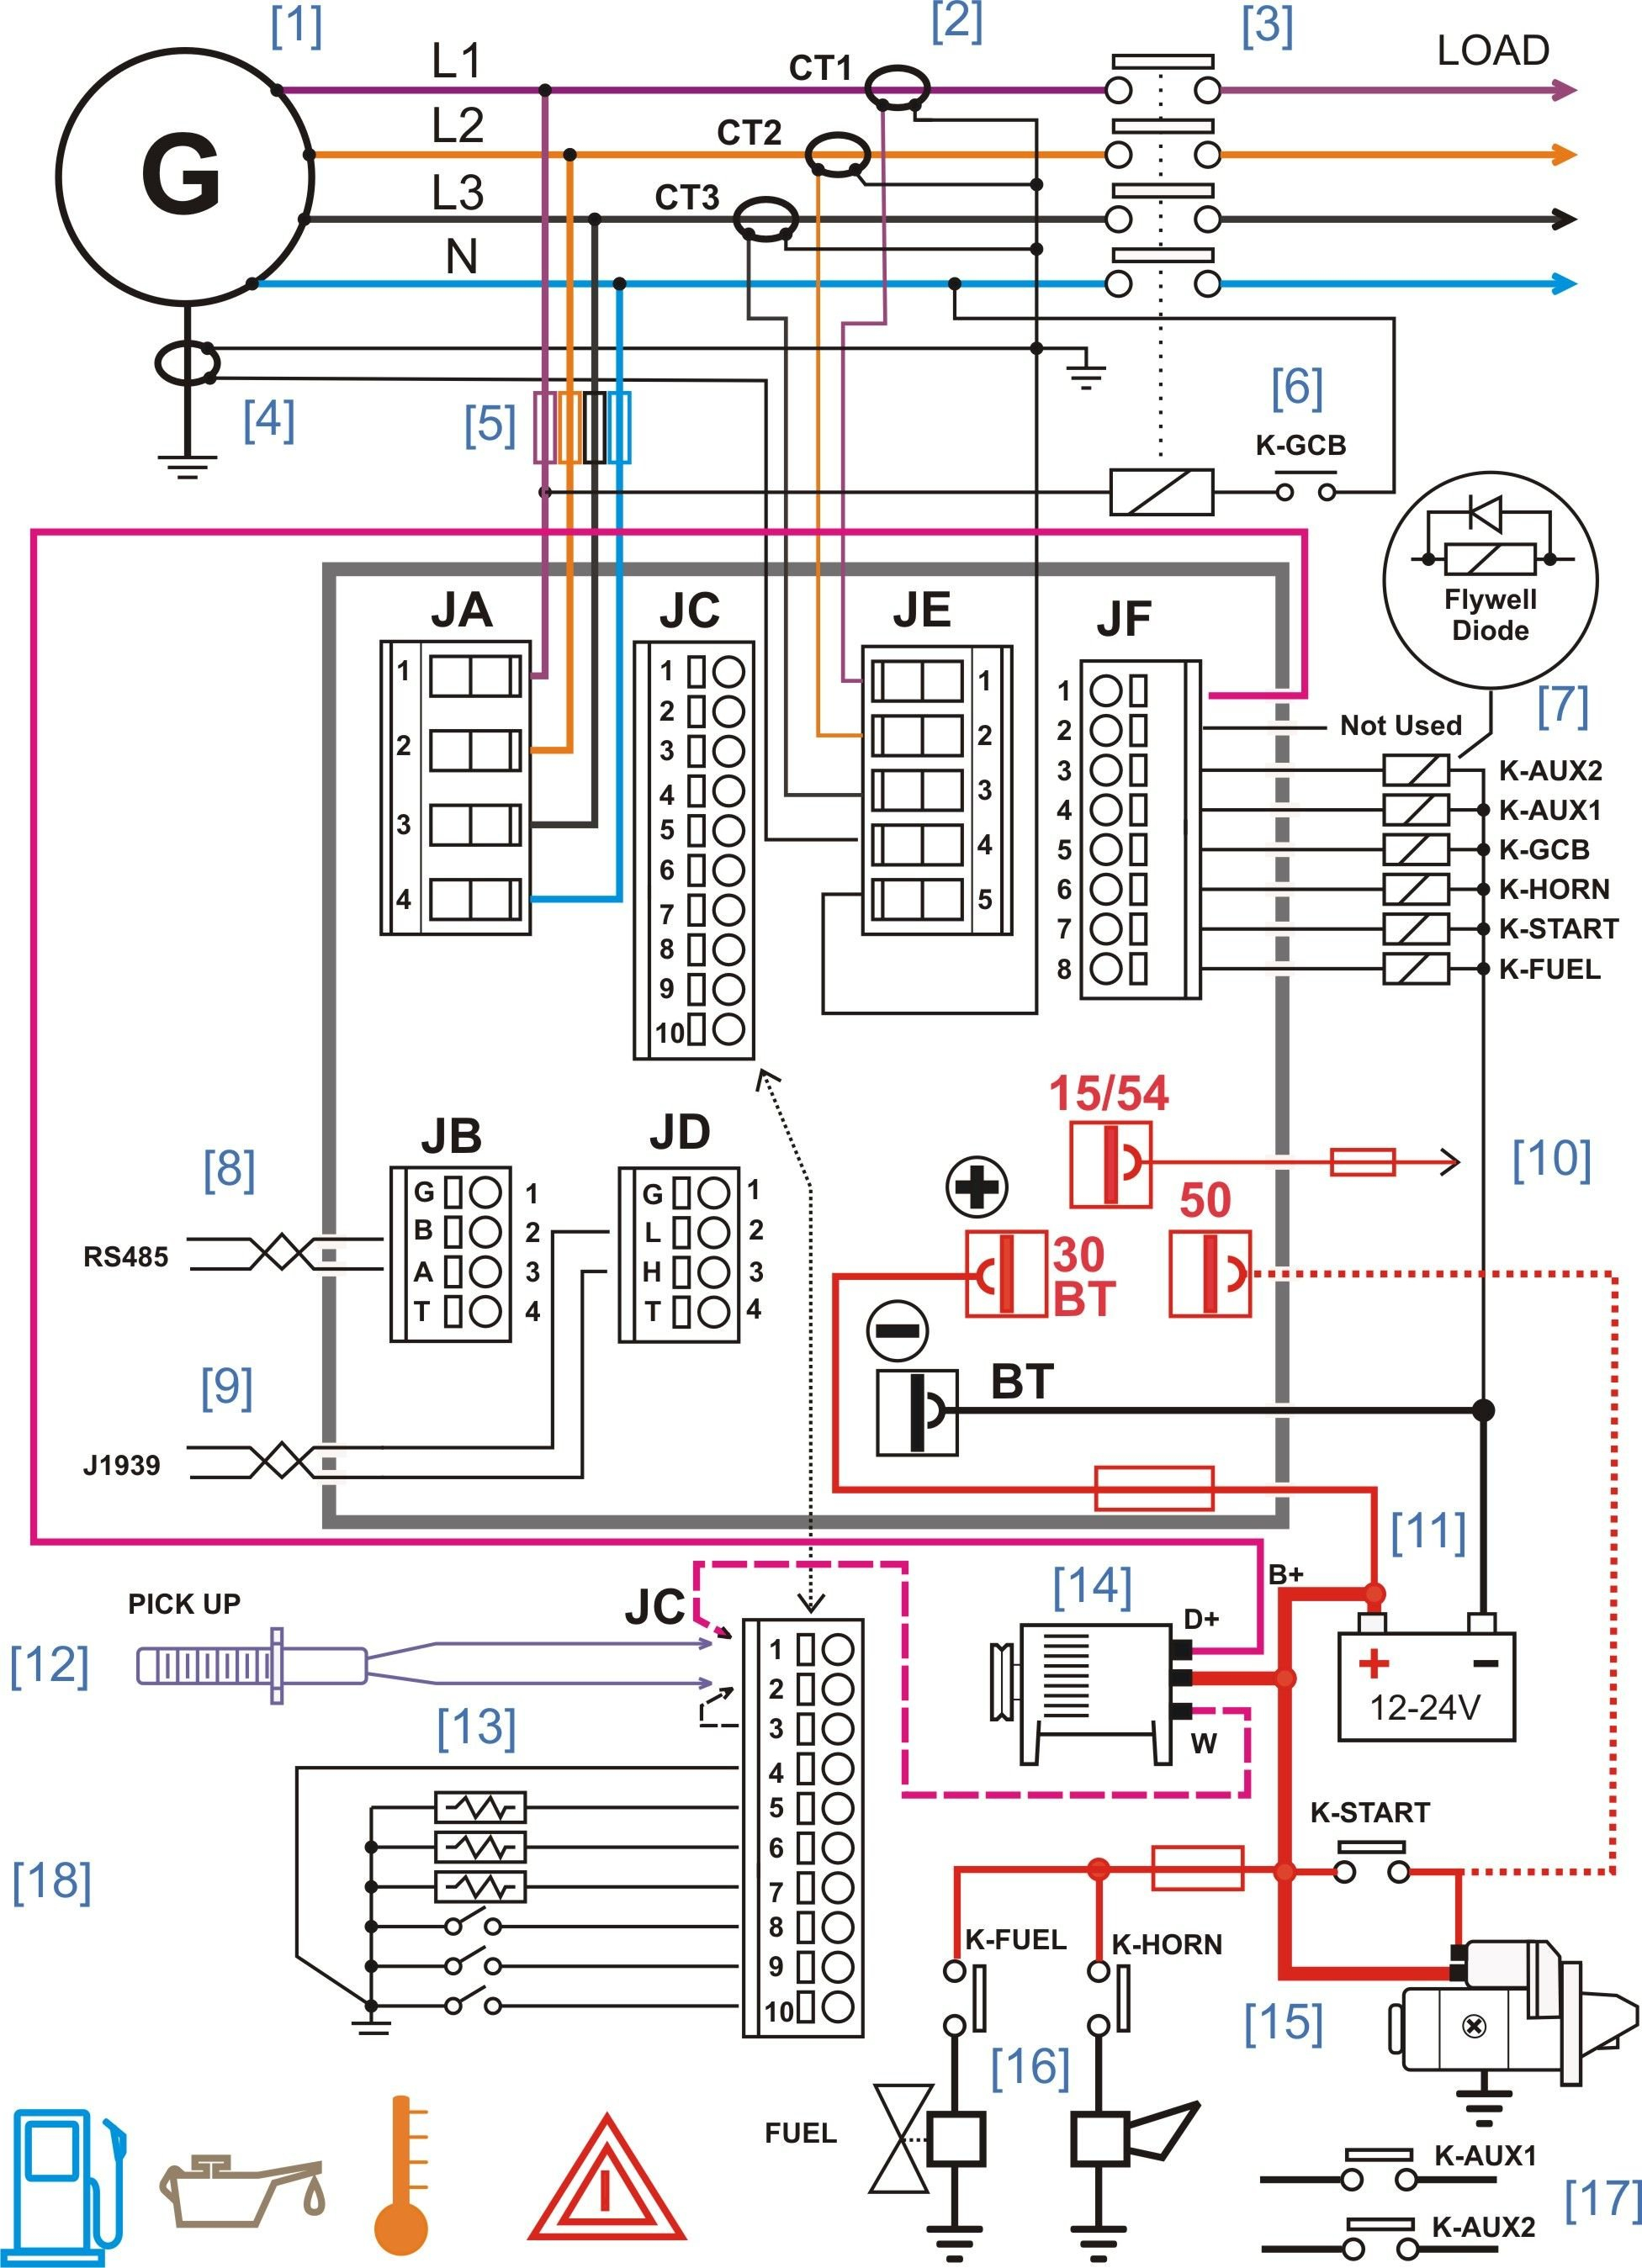 hight resolution of magnetek power converter 6345 wiring diagram gallery magnetek power converter 6345 wiring diagram rv power converter